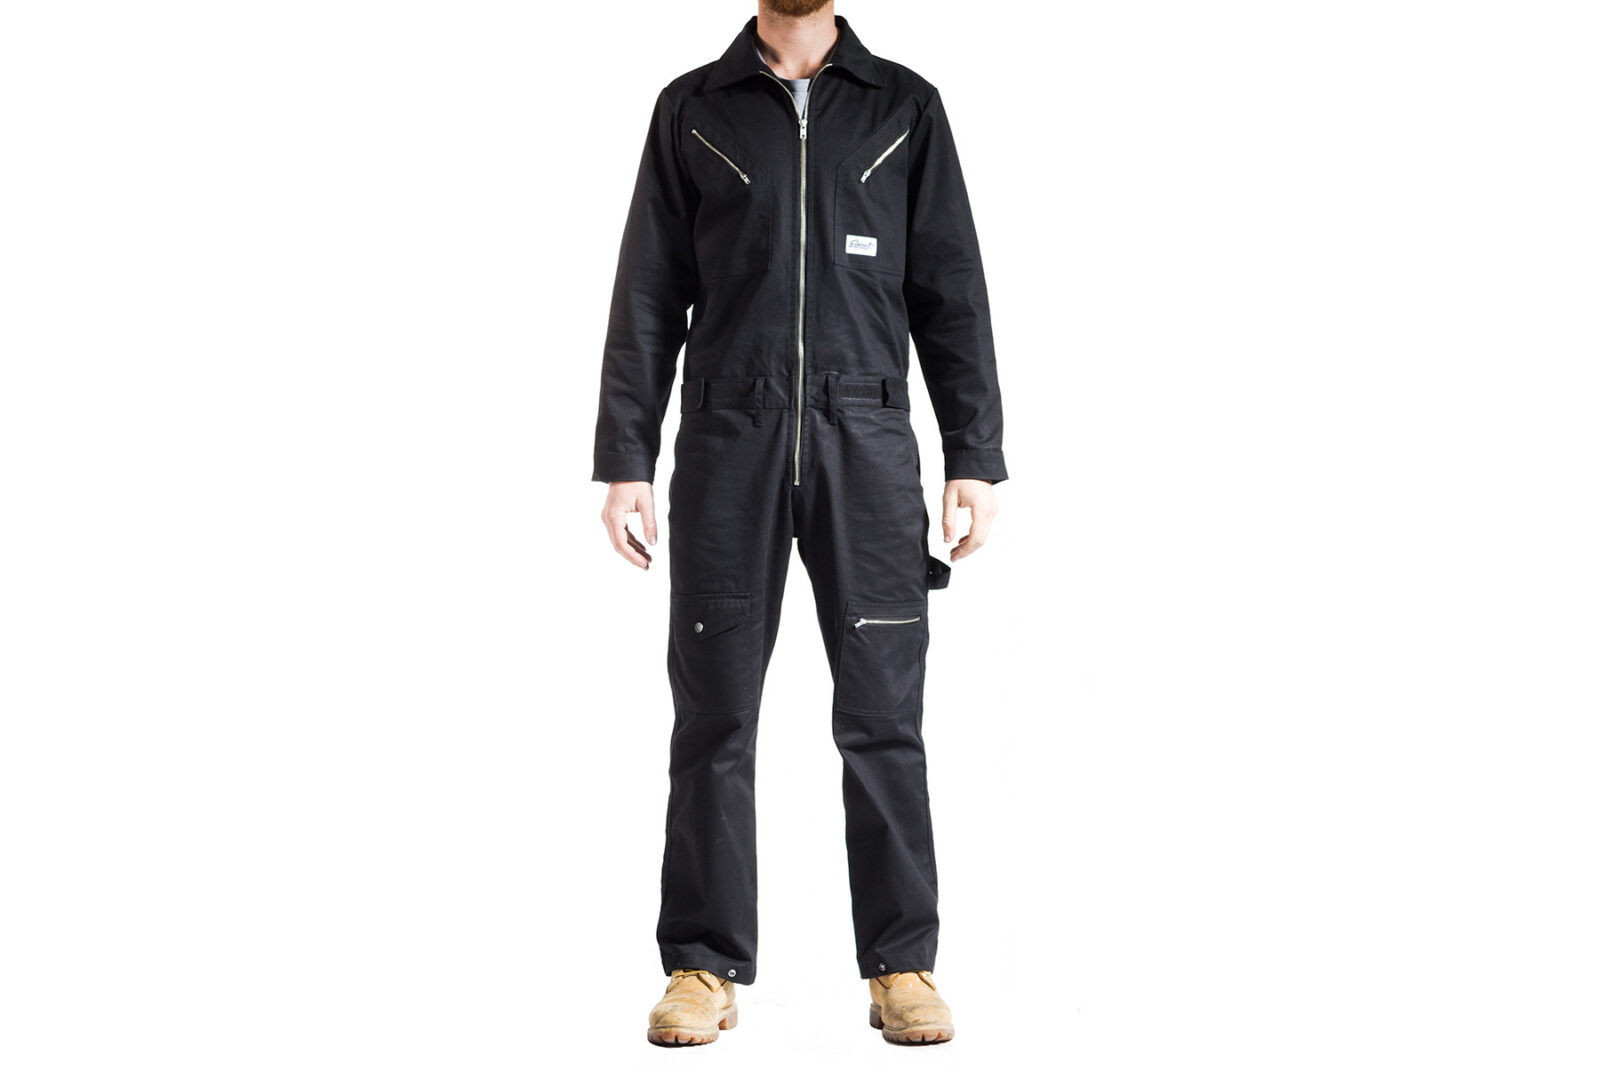 Earnest Co. Black Bancho Overalls 1600x1079